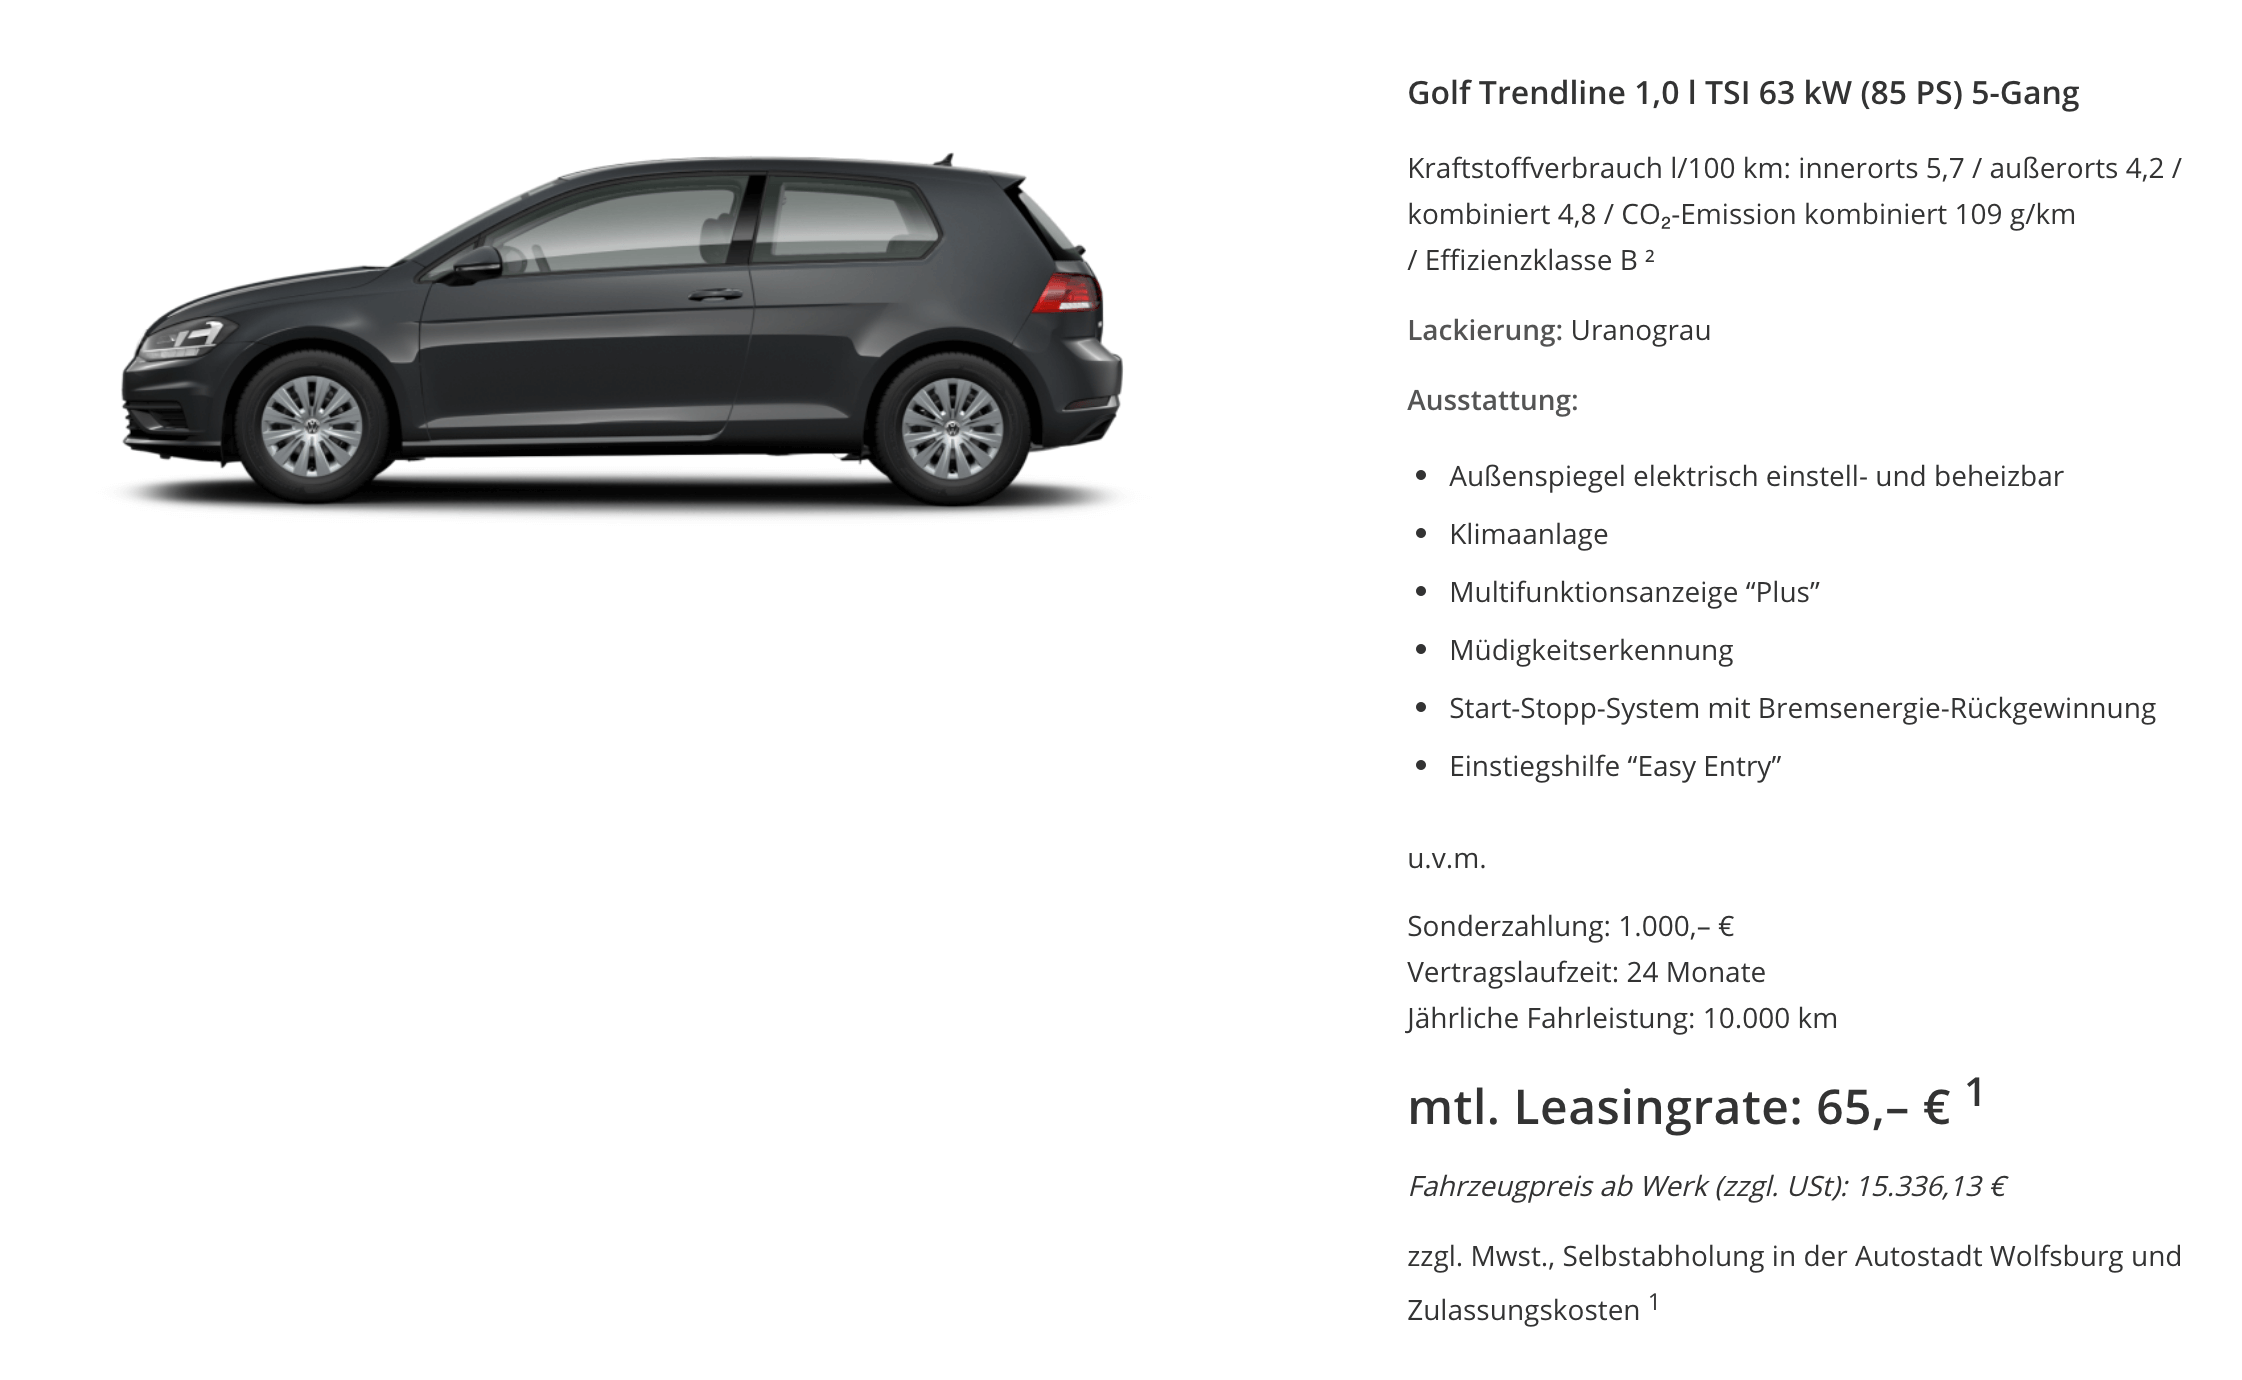 vw golf trendline 1 0 tsi leasing f r 65 107 euro im. Black Bedroom Furniture Sets. Home Design Ideas